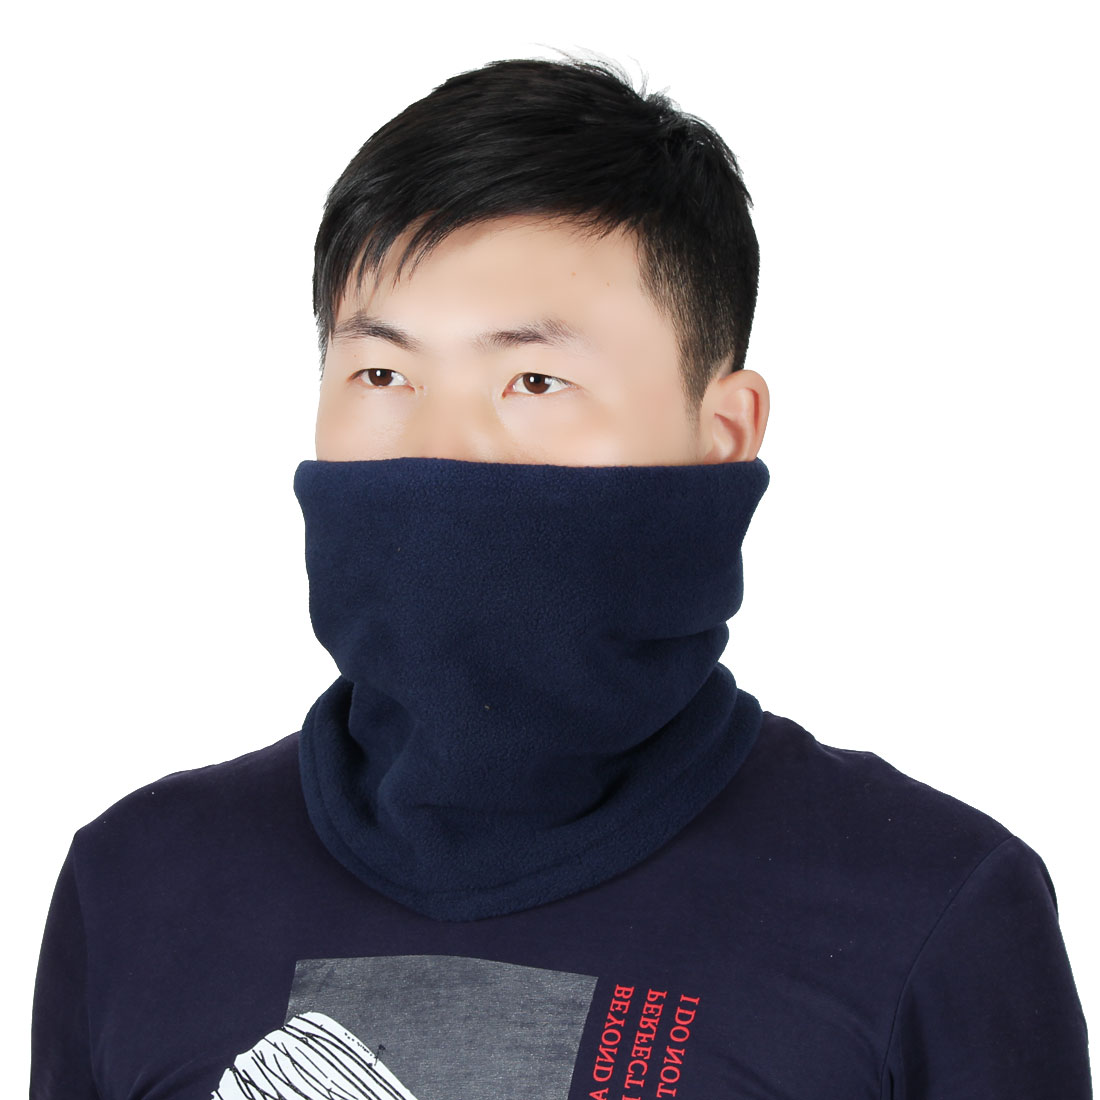 Adjustable Face Mask Winter Neck Tube Protector Outdoor Cycling Scarf Navy Blue by